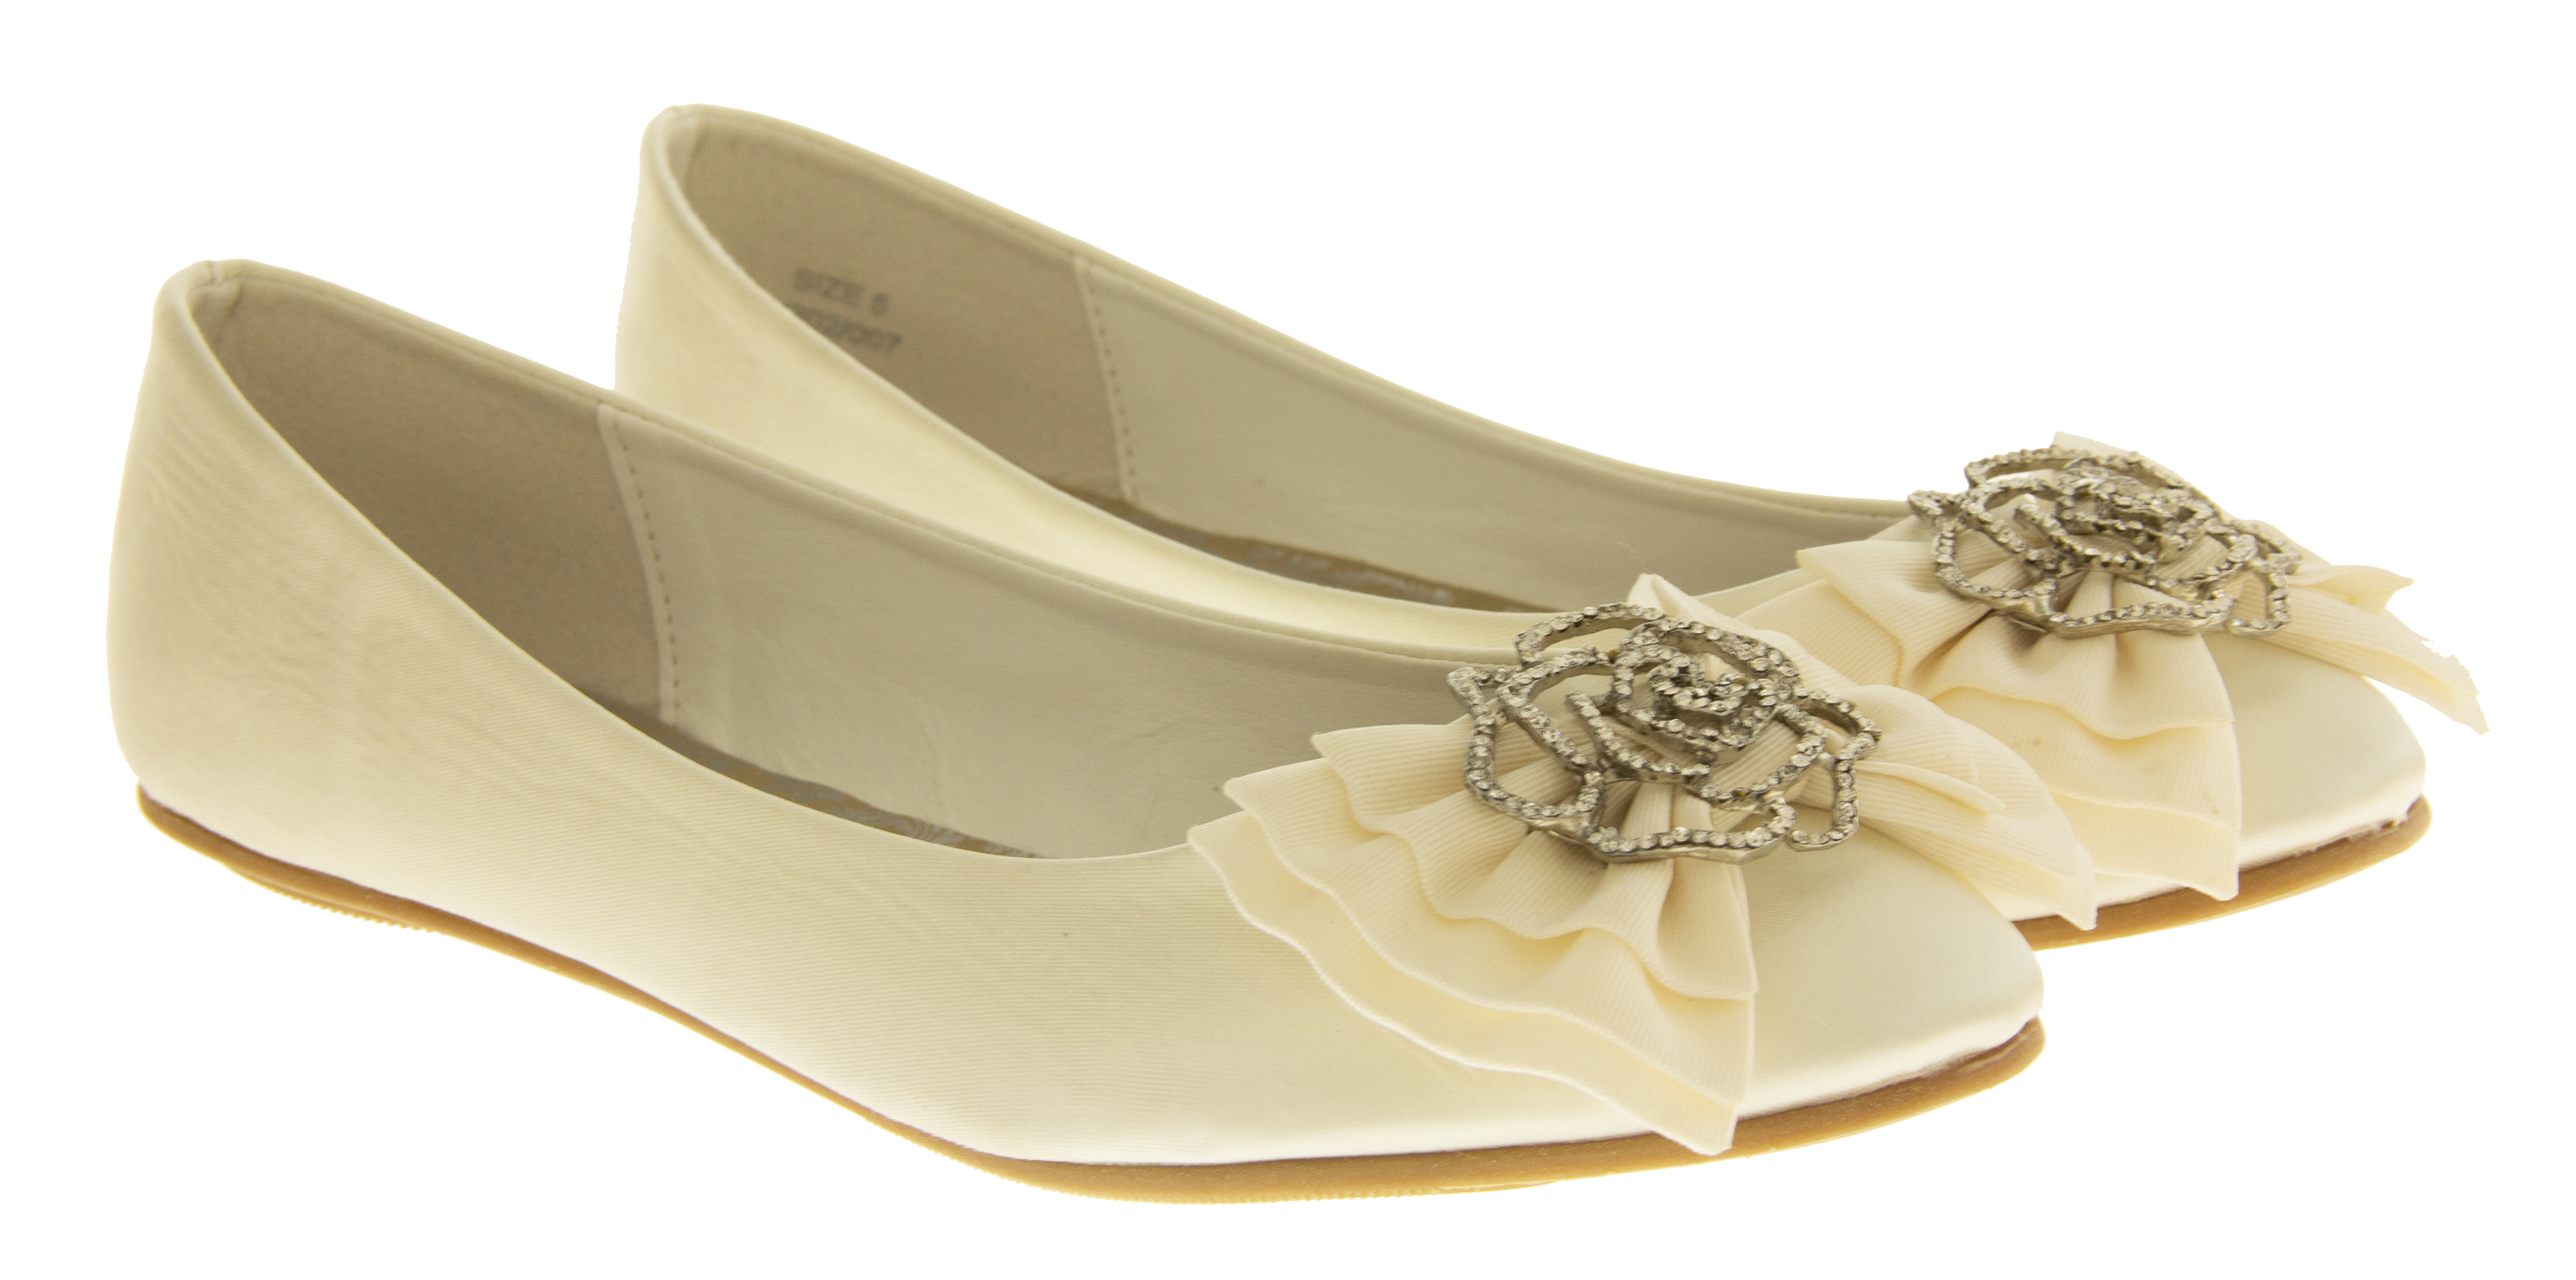 Ivory ballet flats - results from brands Trotters, Nina, Easy Street, products like Hush Puppies Chaste' Ballet Flat (Women), Elephantito Baby Ballet Flat (Infant/Toddler) (Ivory) Girl's Shoes, Easy Street Charlize Women's Bone Slip On 6 M, Shoes.